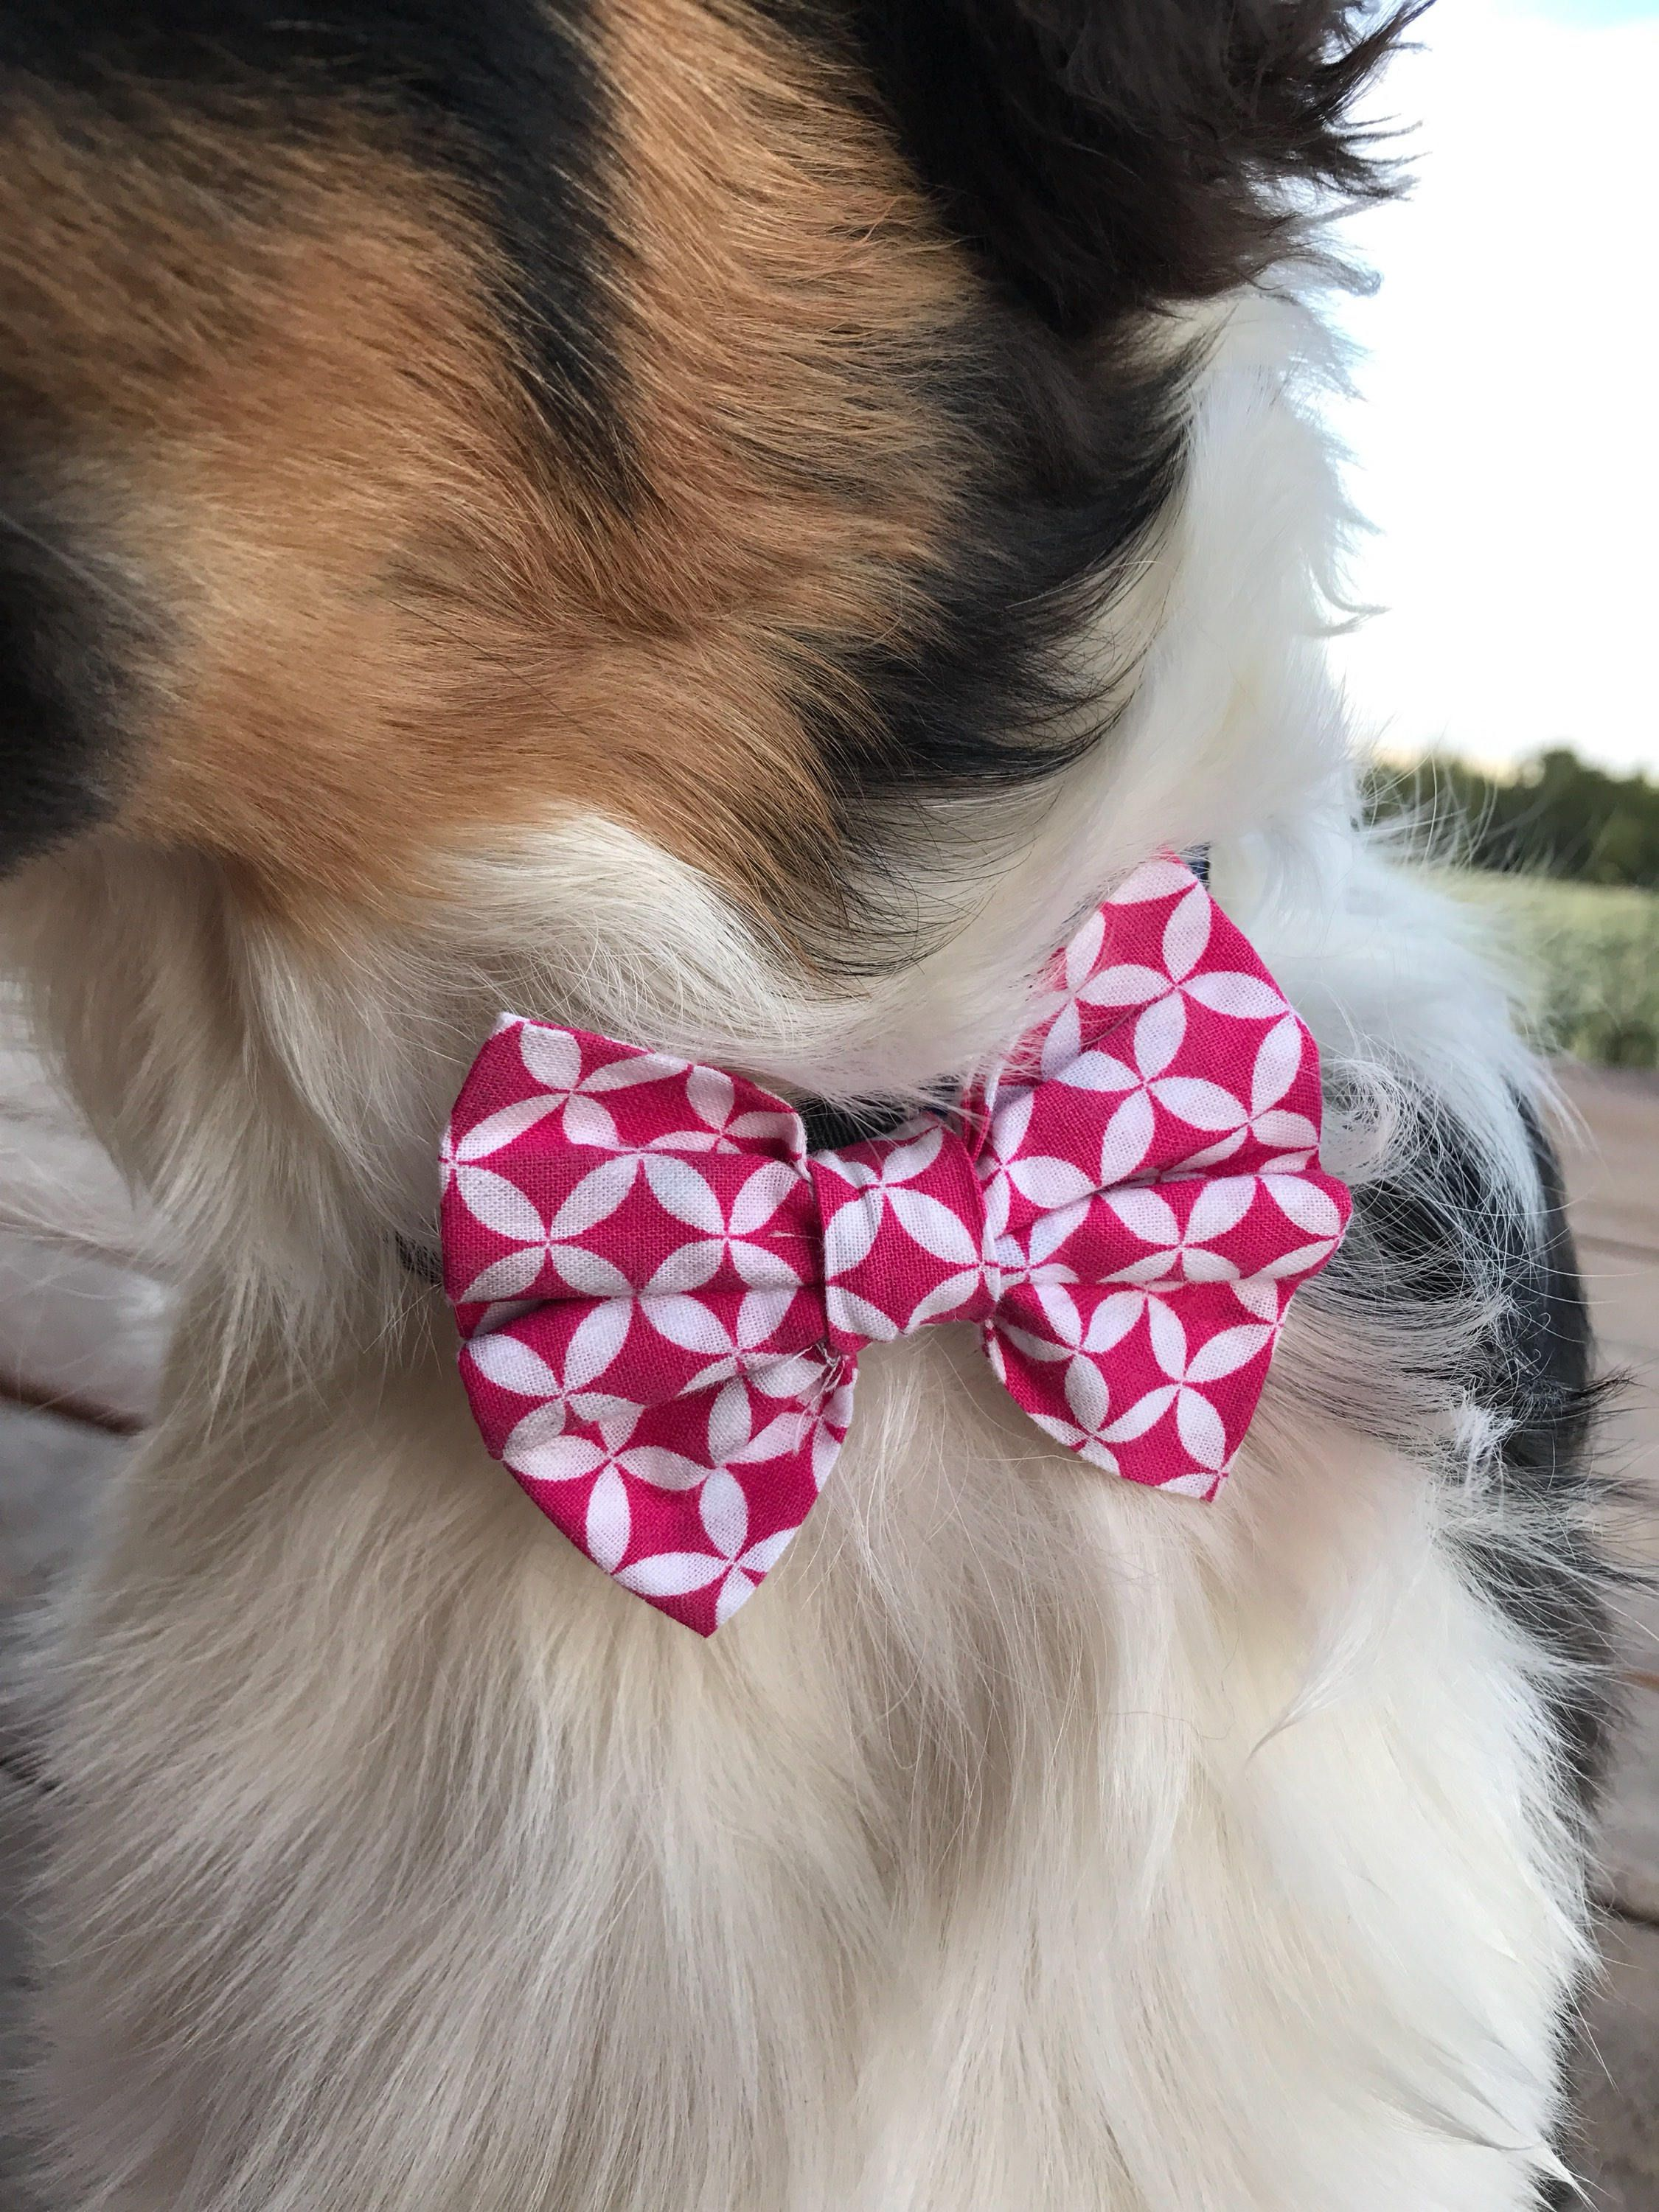 Simple Collar Bow Adorable Dog - a14dbba7dbd9d33b7c232402d62c22ac  Graphic_308557  .jpg